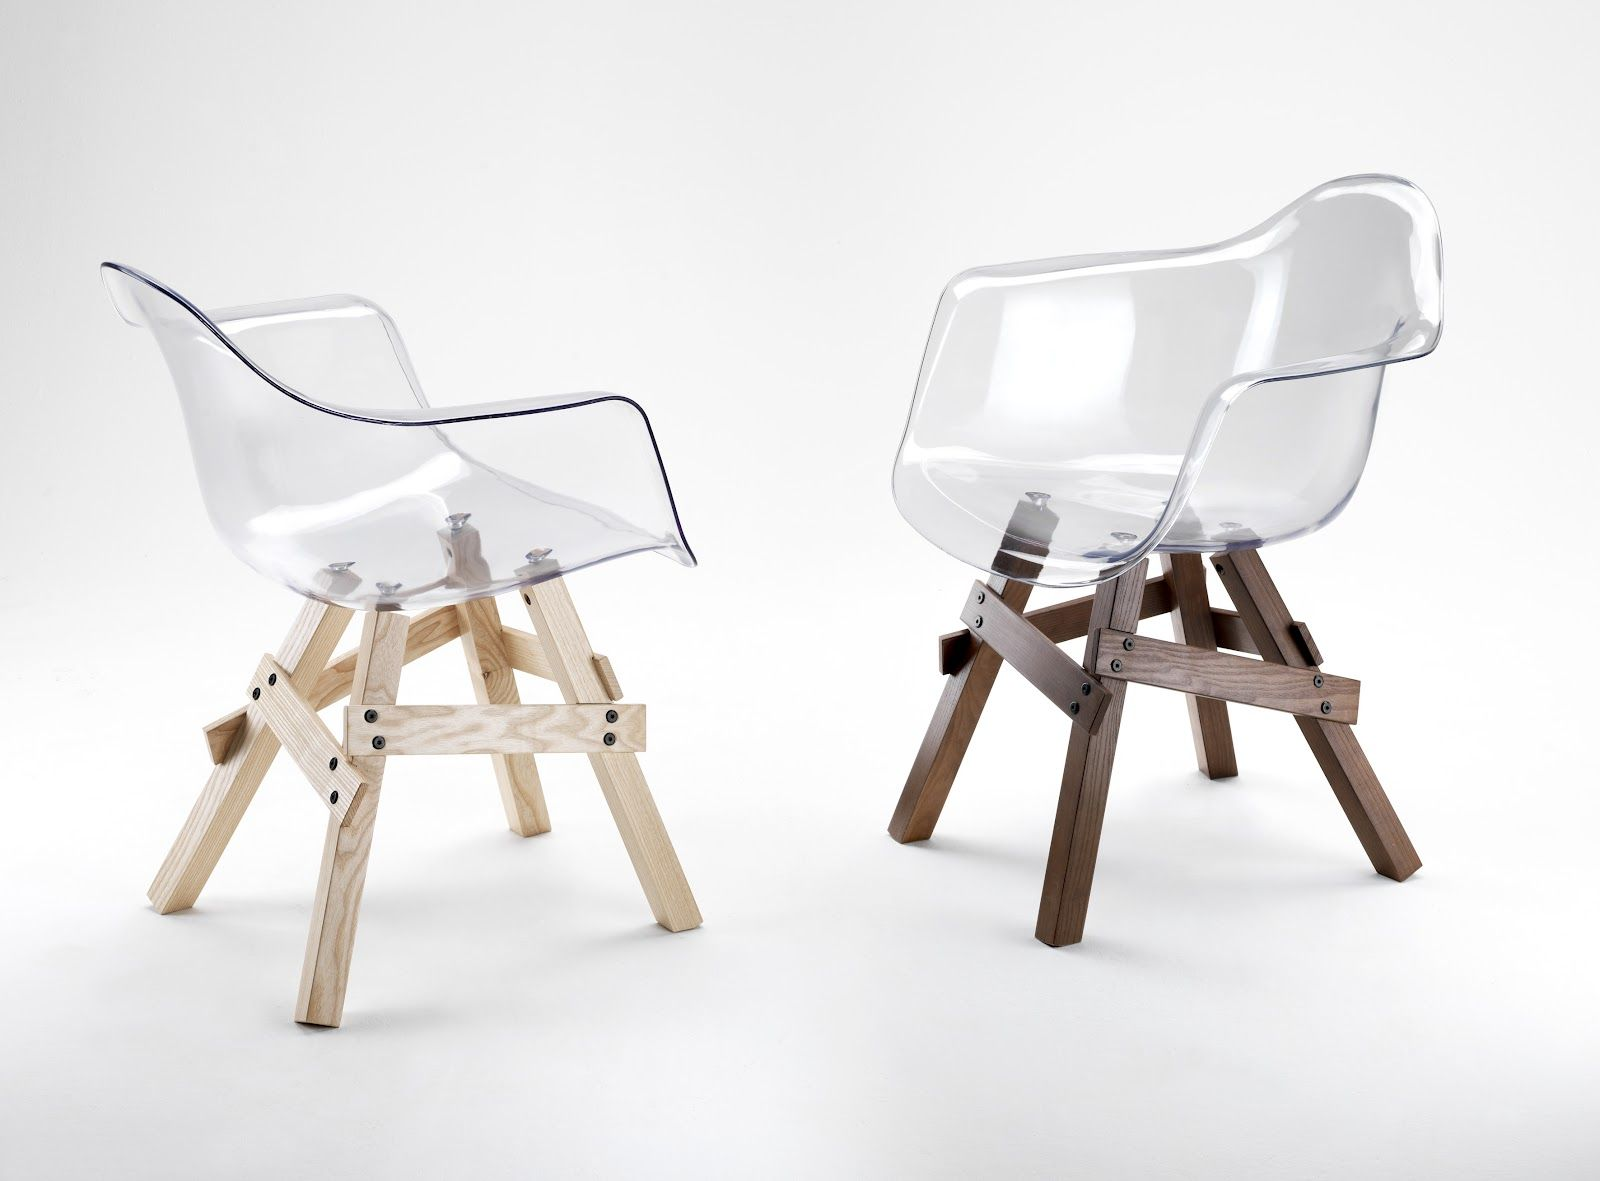 Méchant Design: Chairs to Hege in France